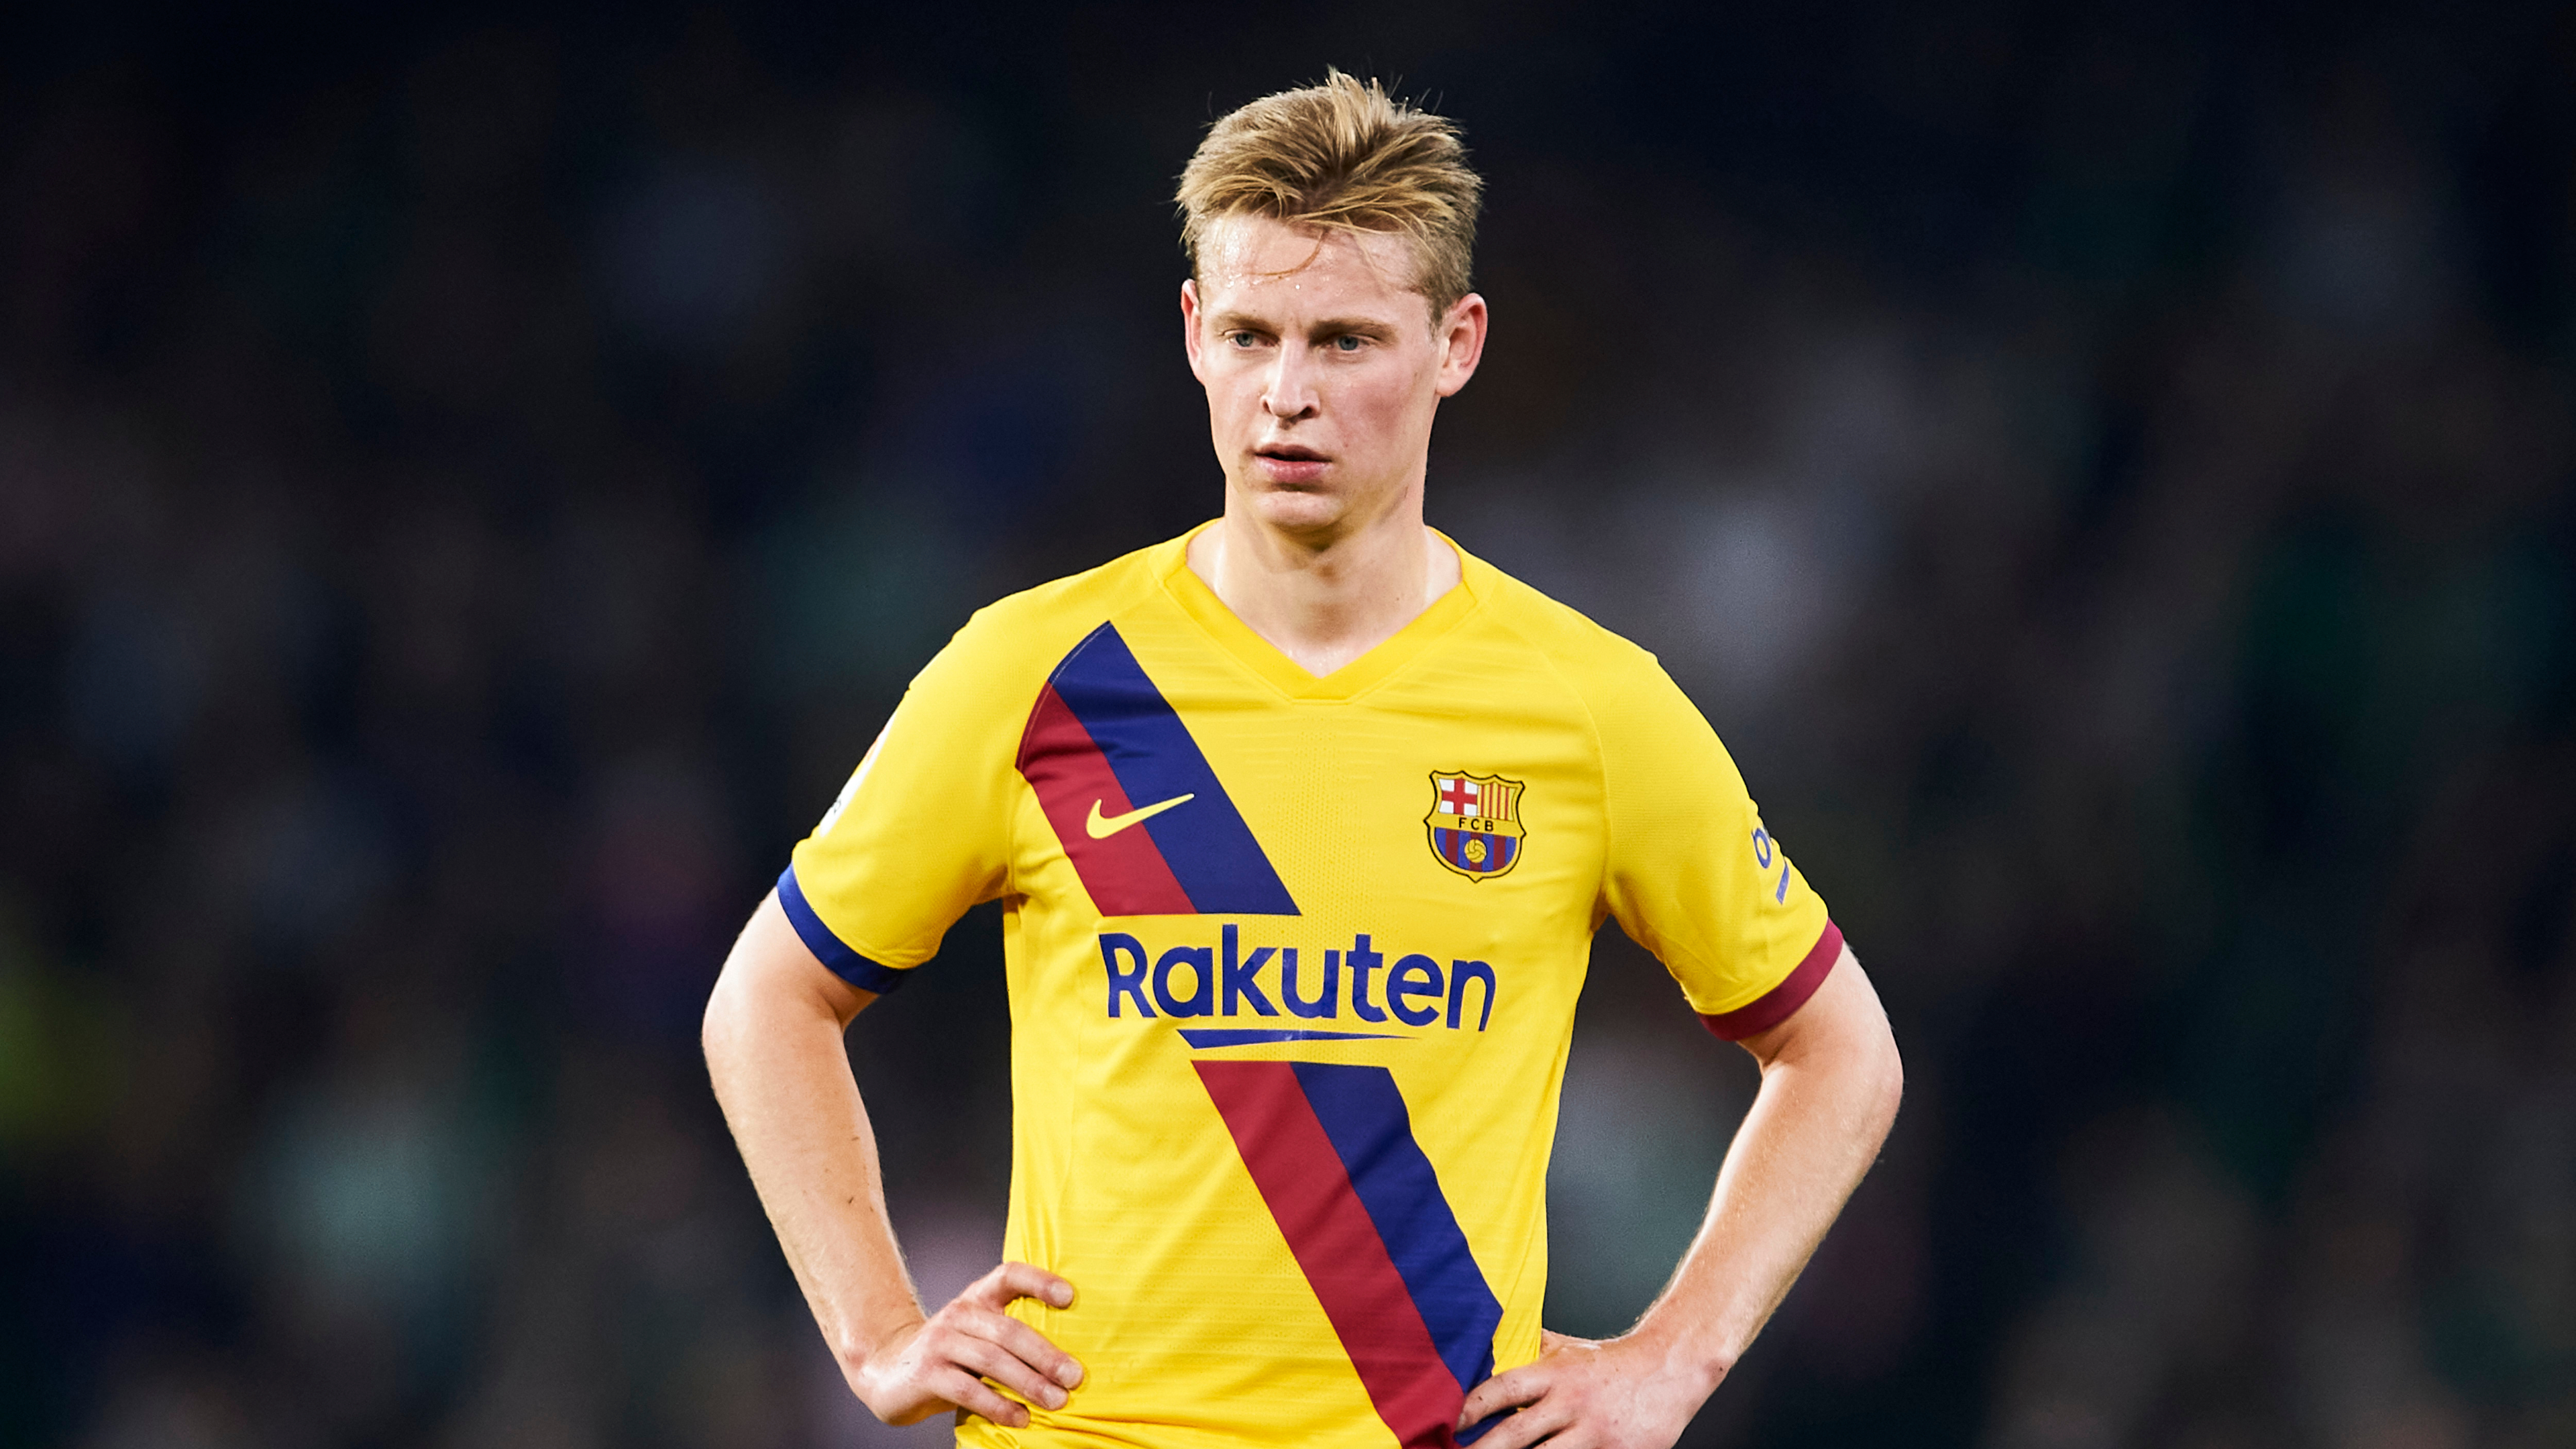 'If Messi is giving you advice, you take it' - De Jong on adapting and learning at Barcelona